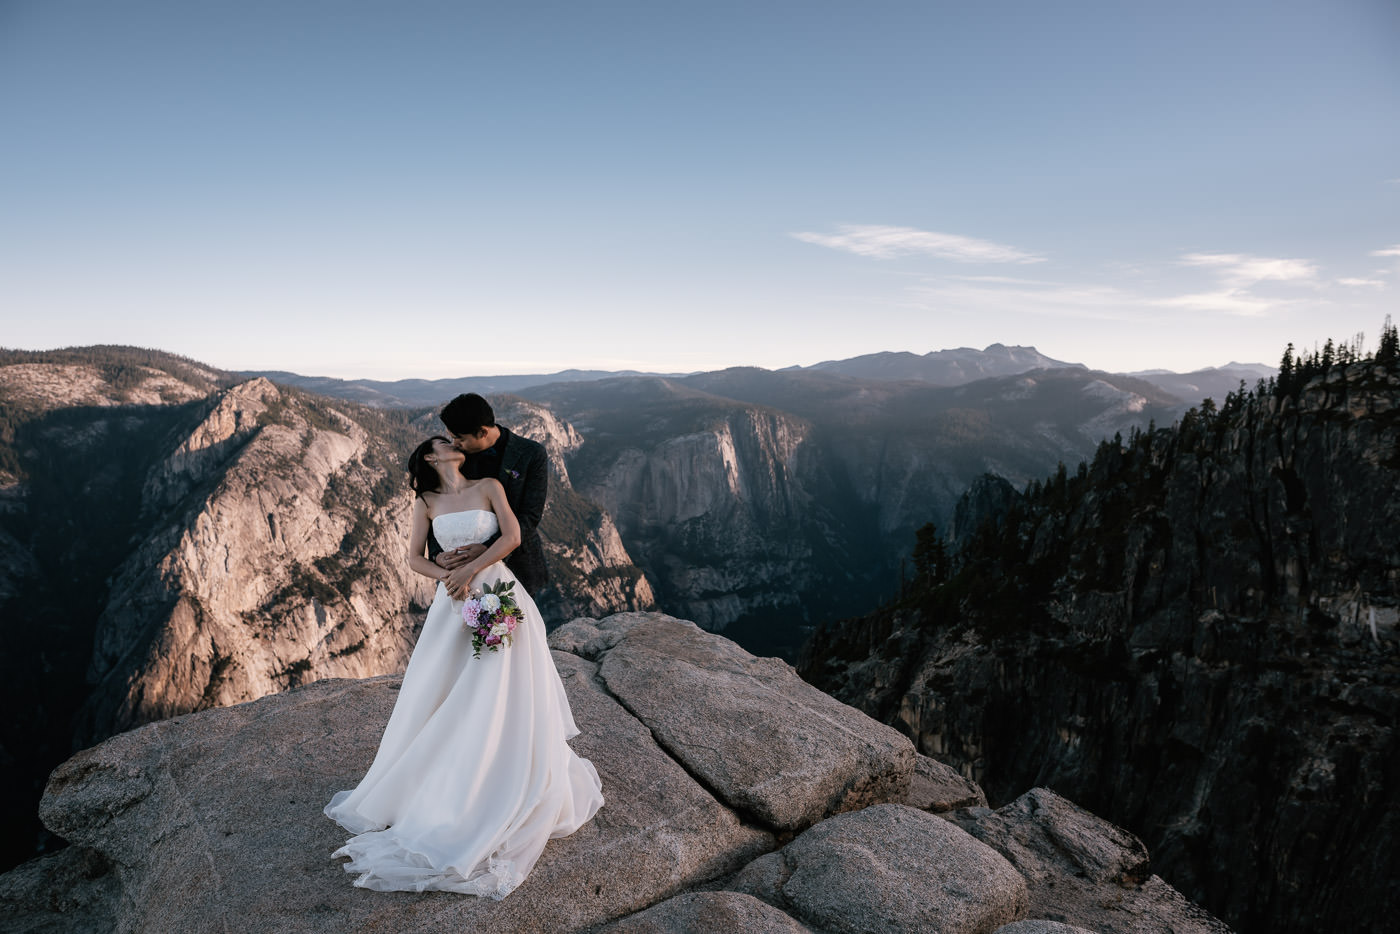 The scenic backdrop of the Sierra Nevada makes for the perfect destination for adventurous elopements.